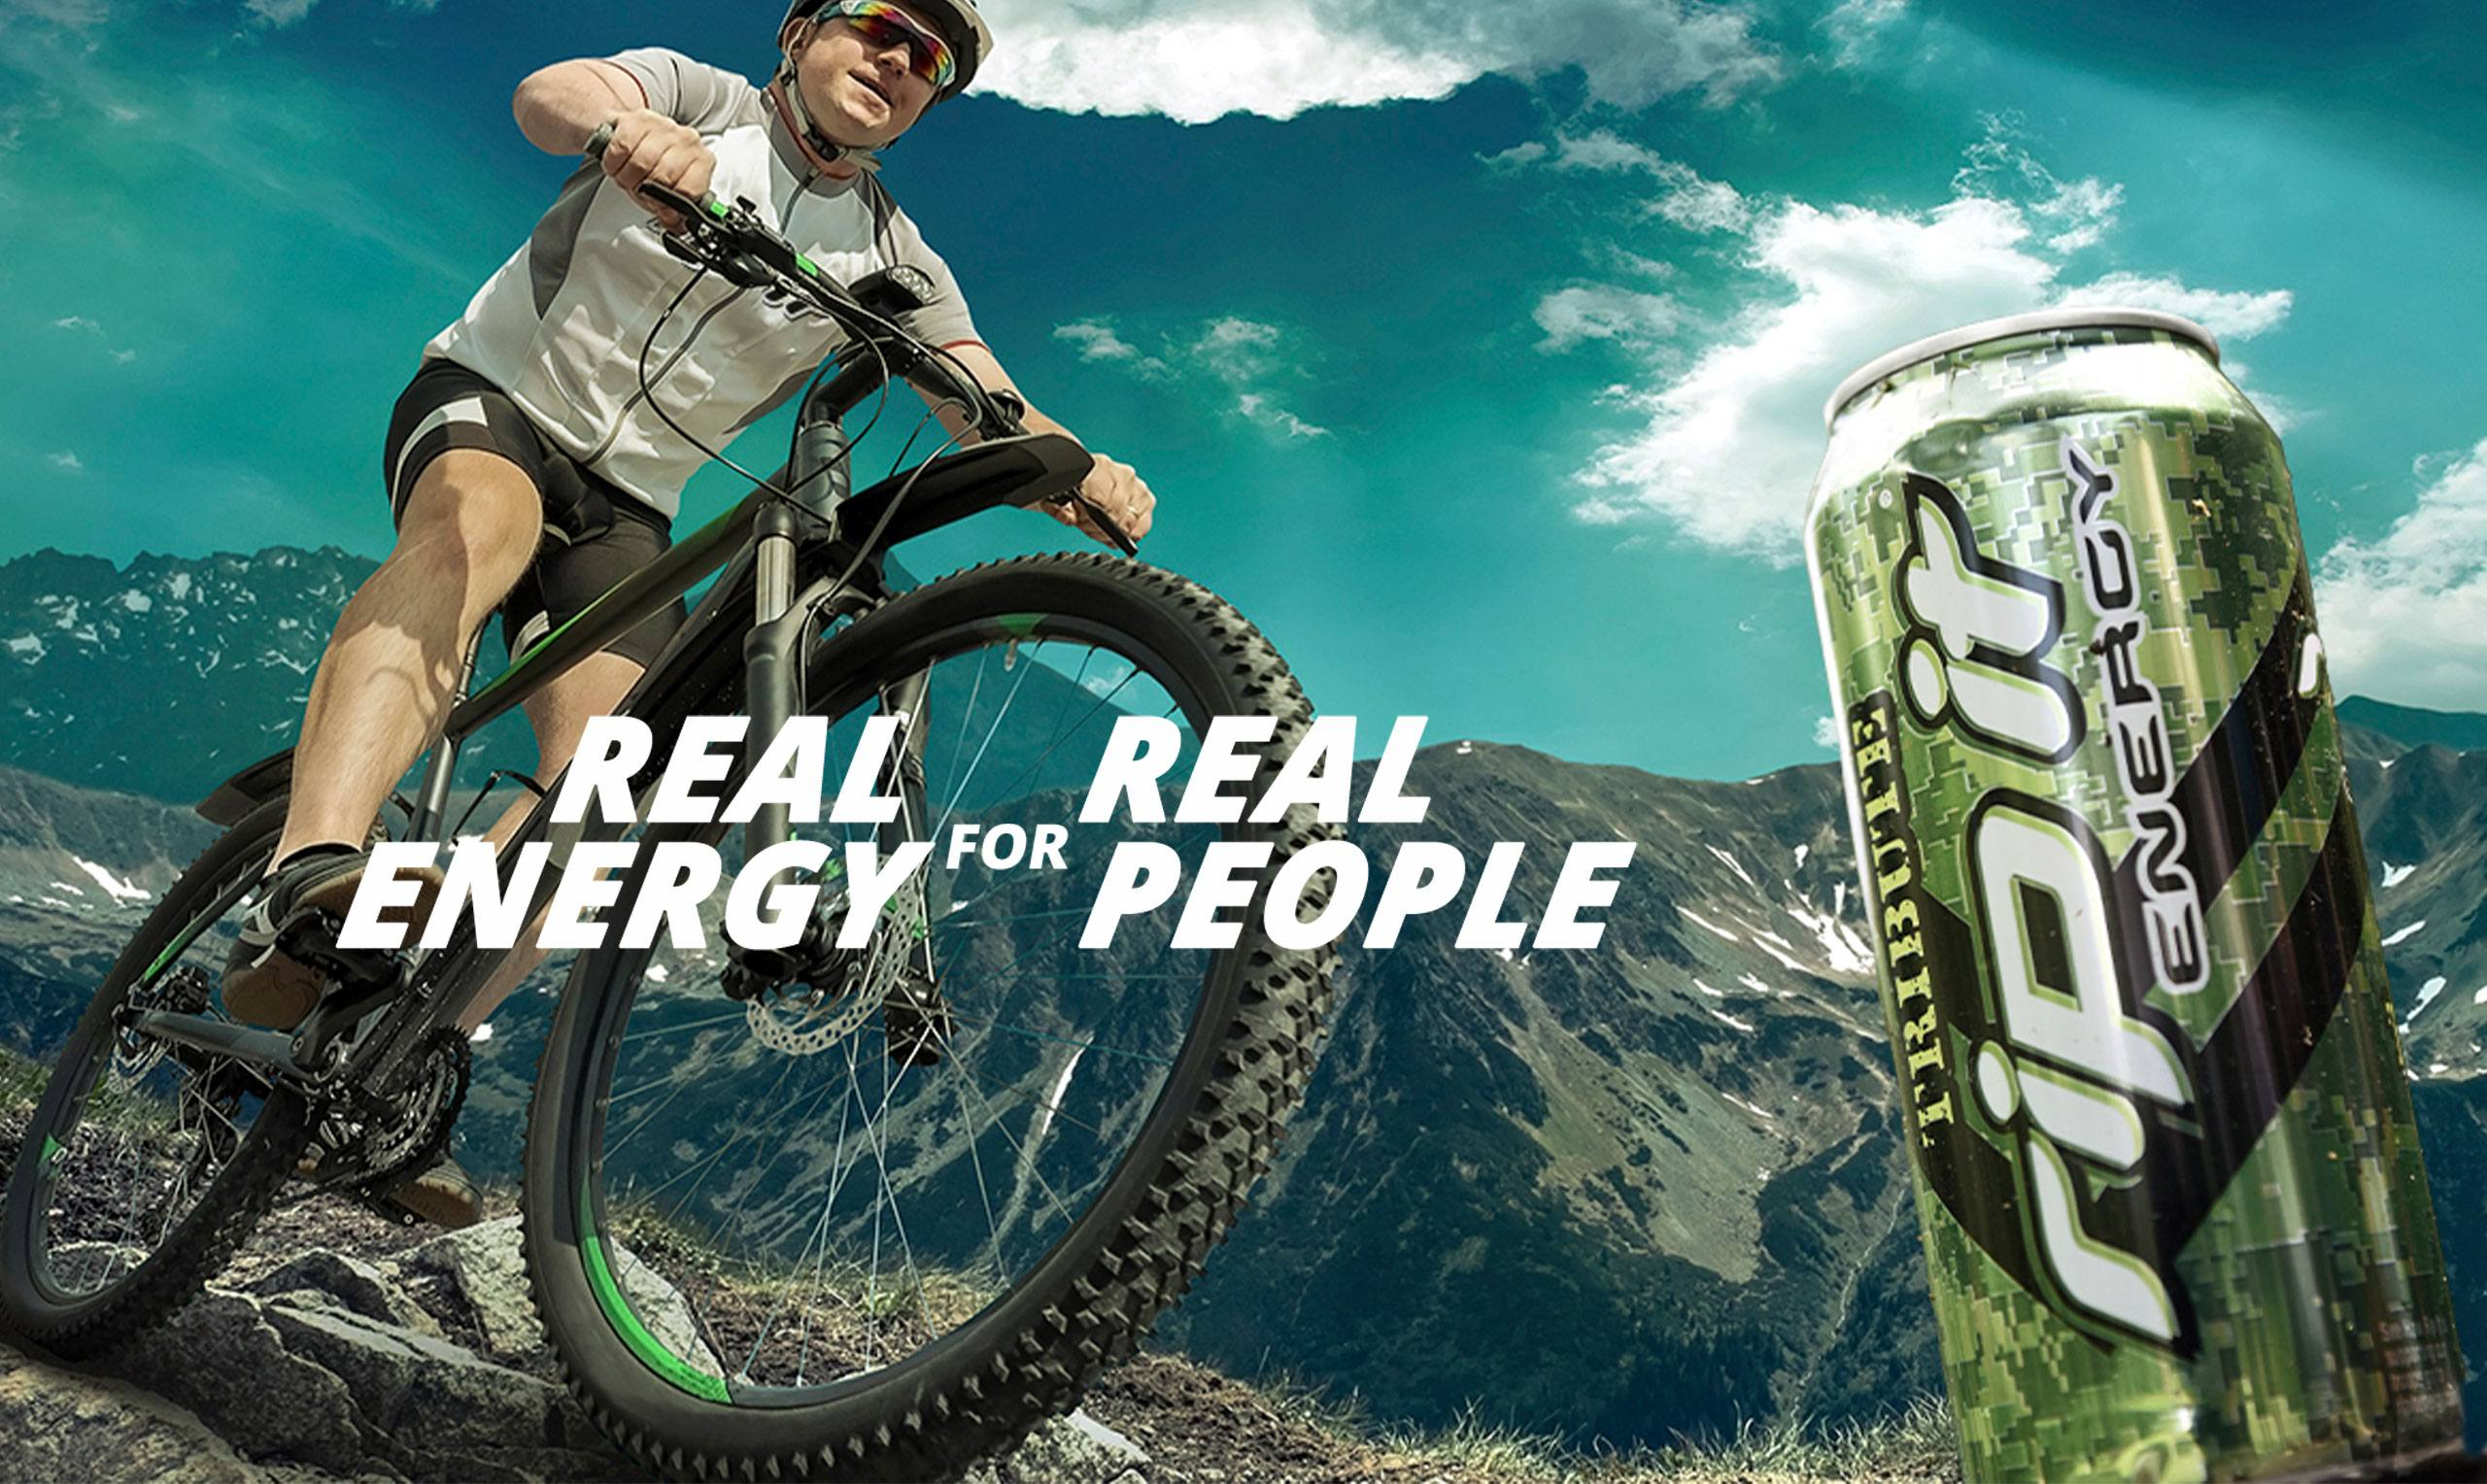 Real Energy Real Peaple